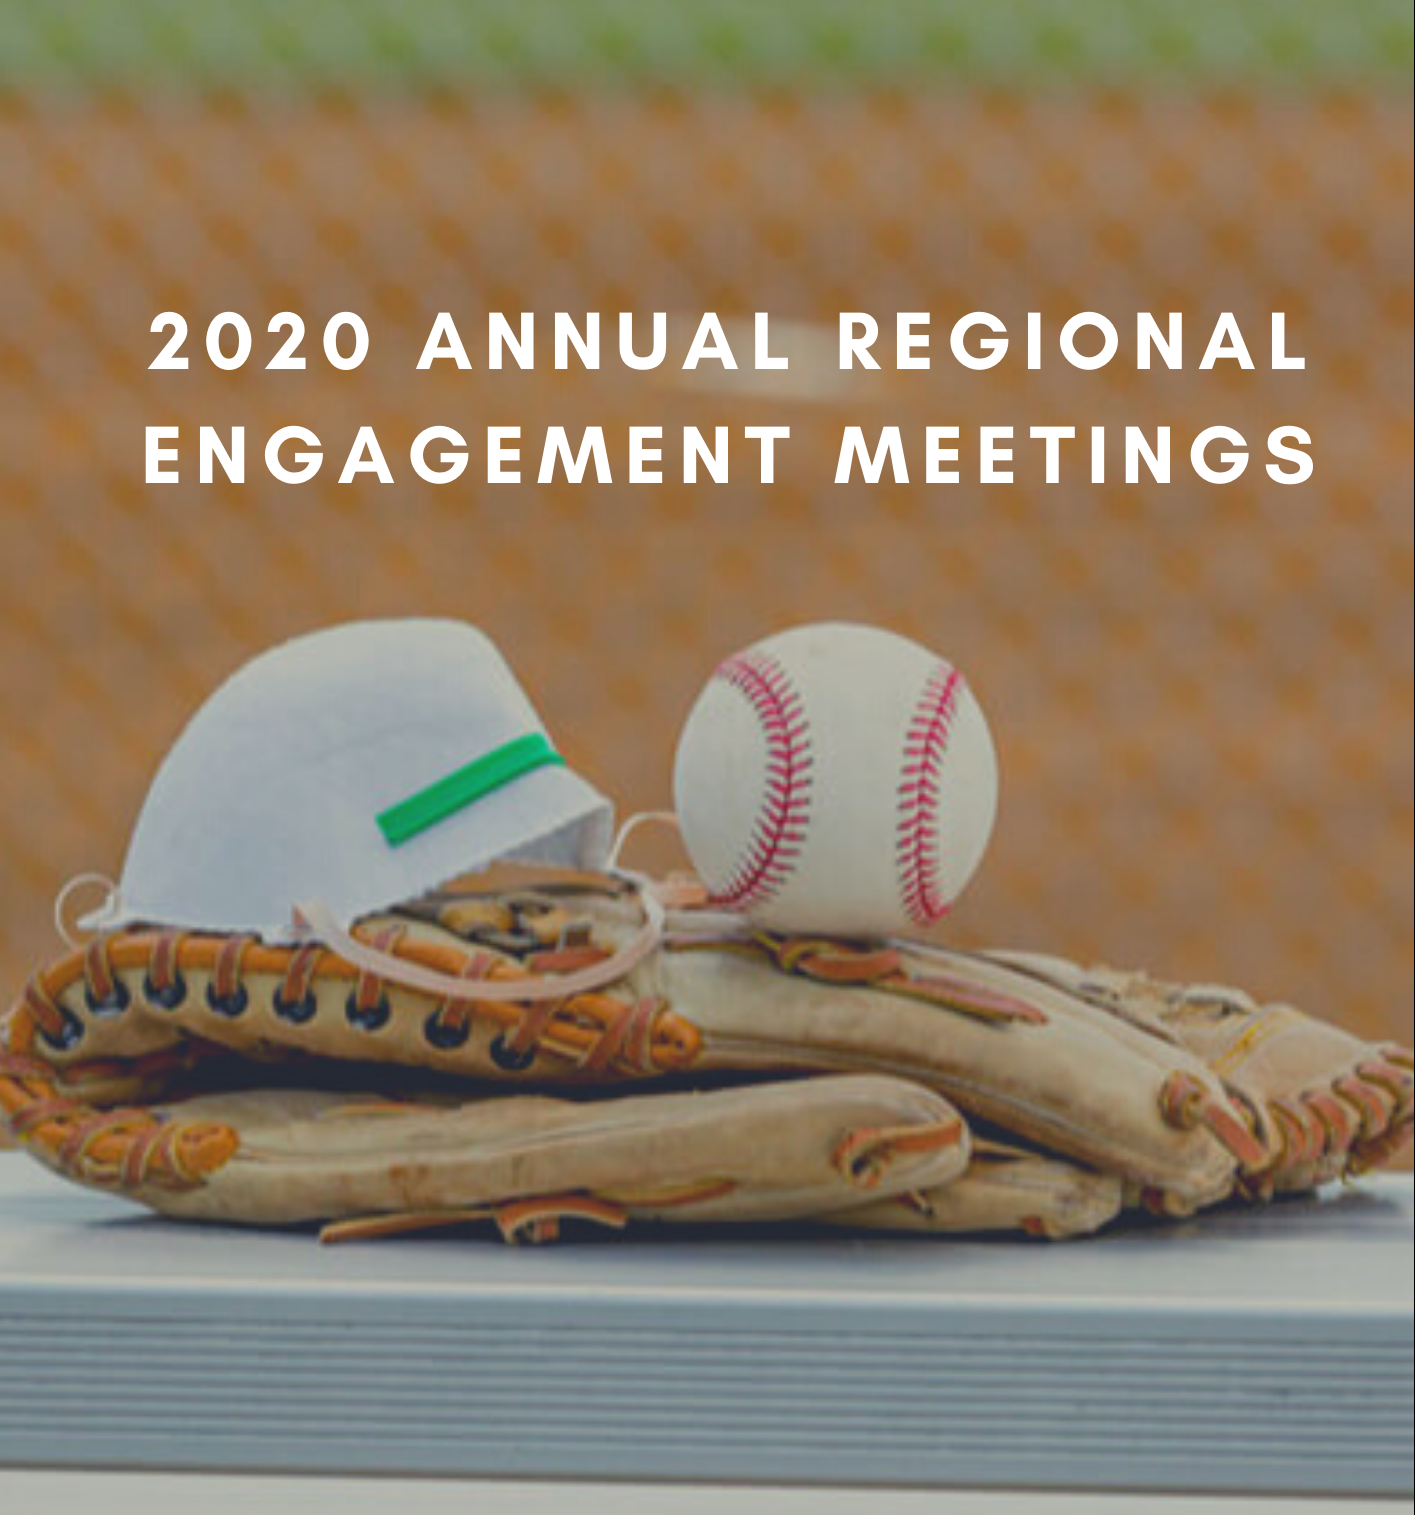 2020 Annual Regional Engagement Sessions